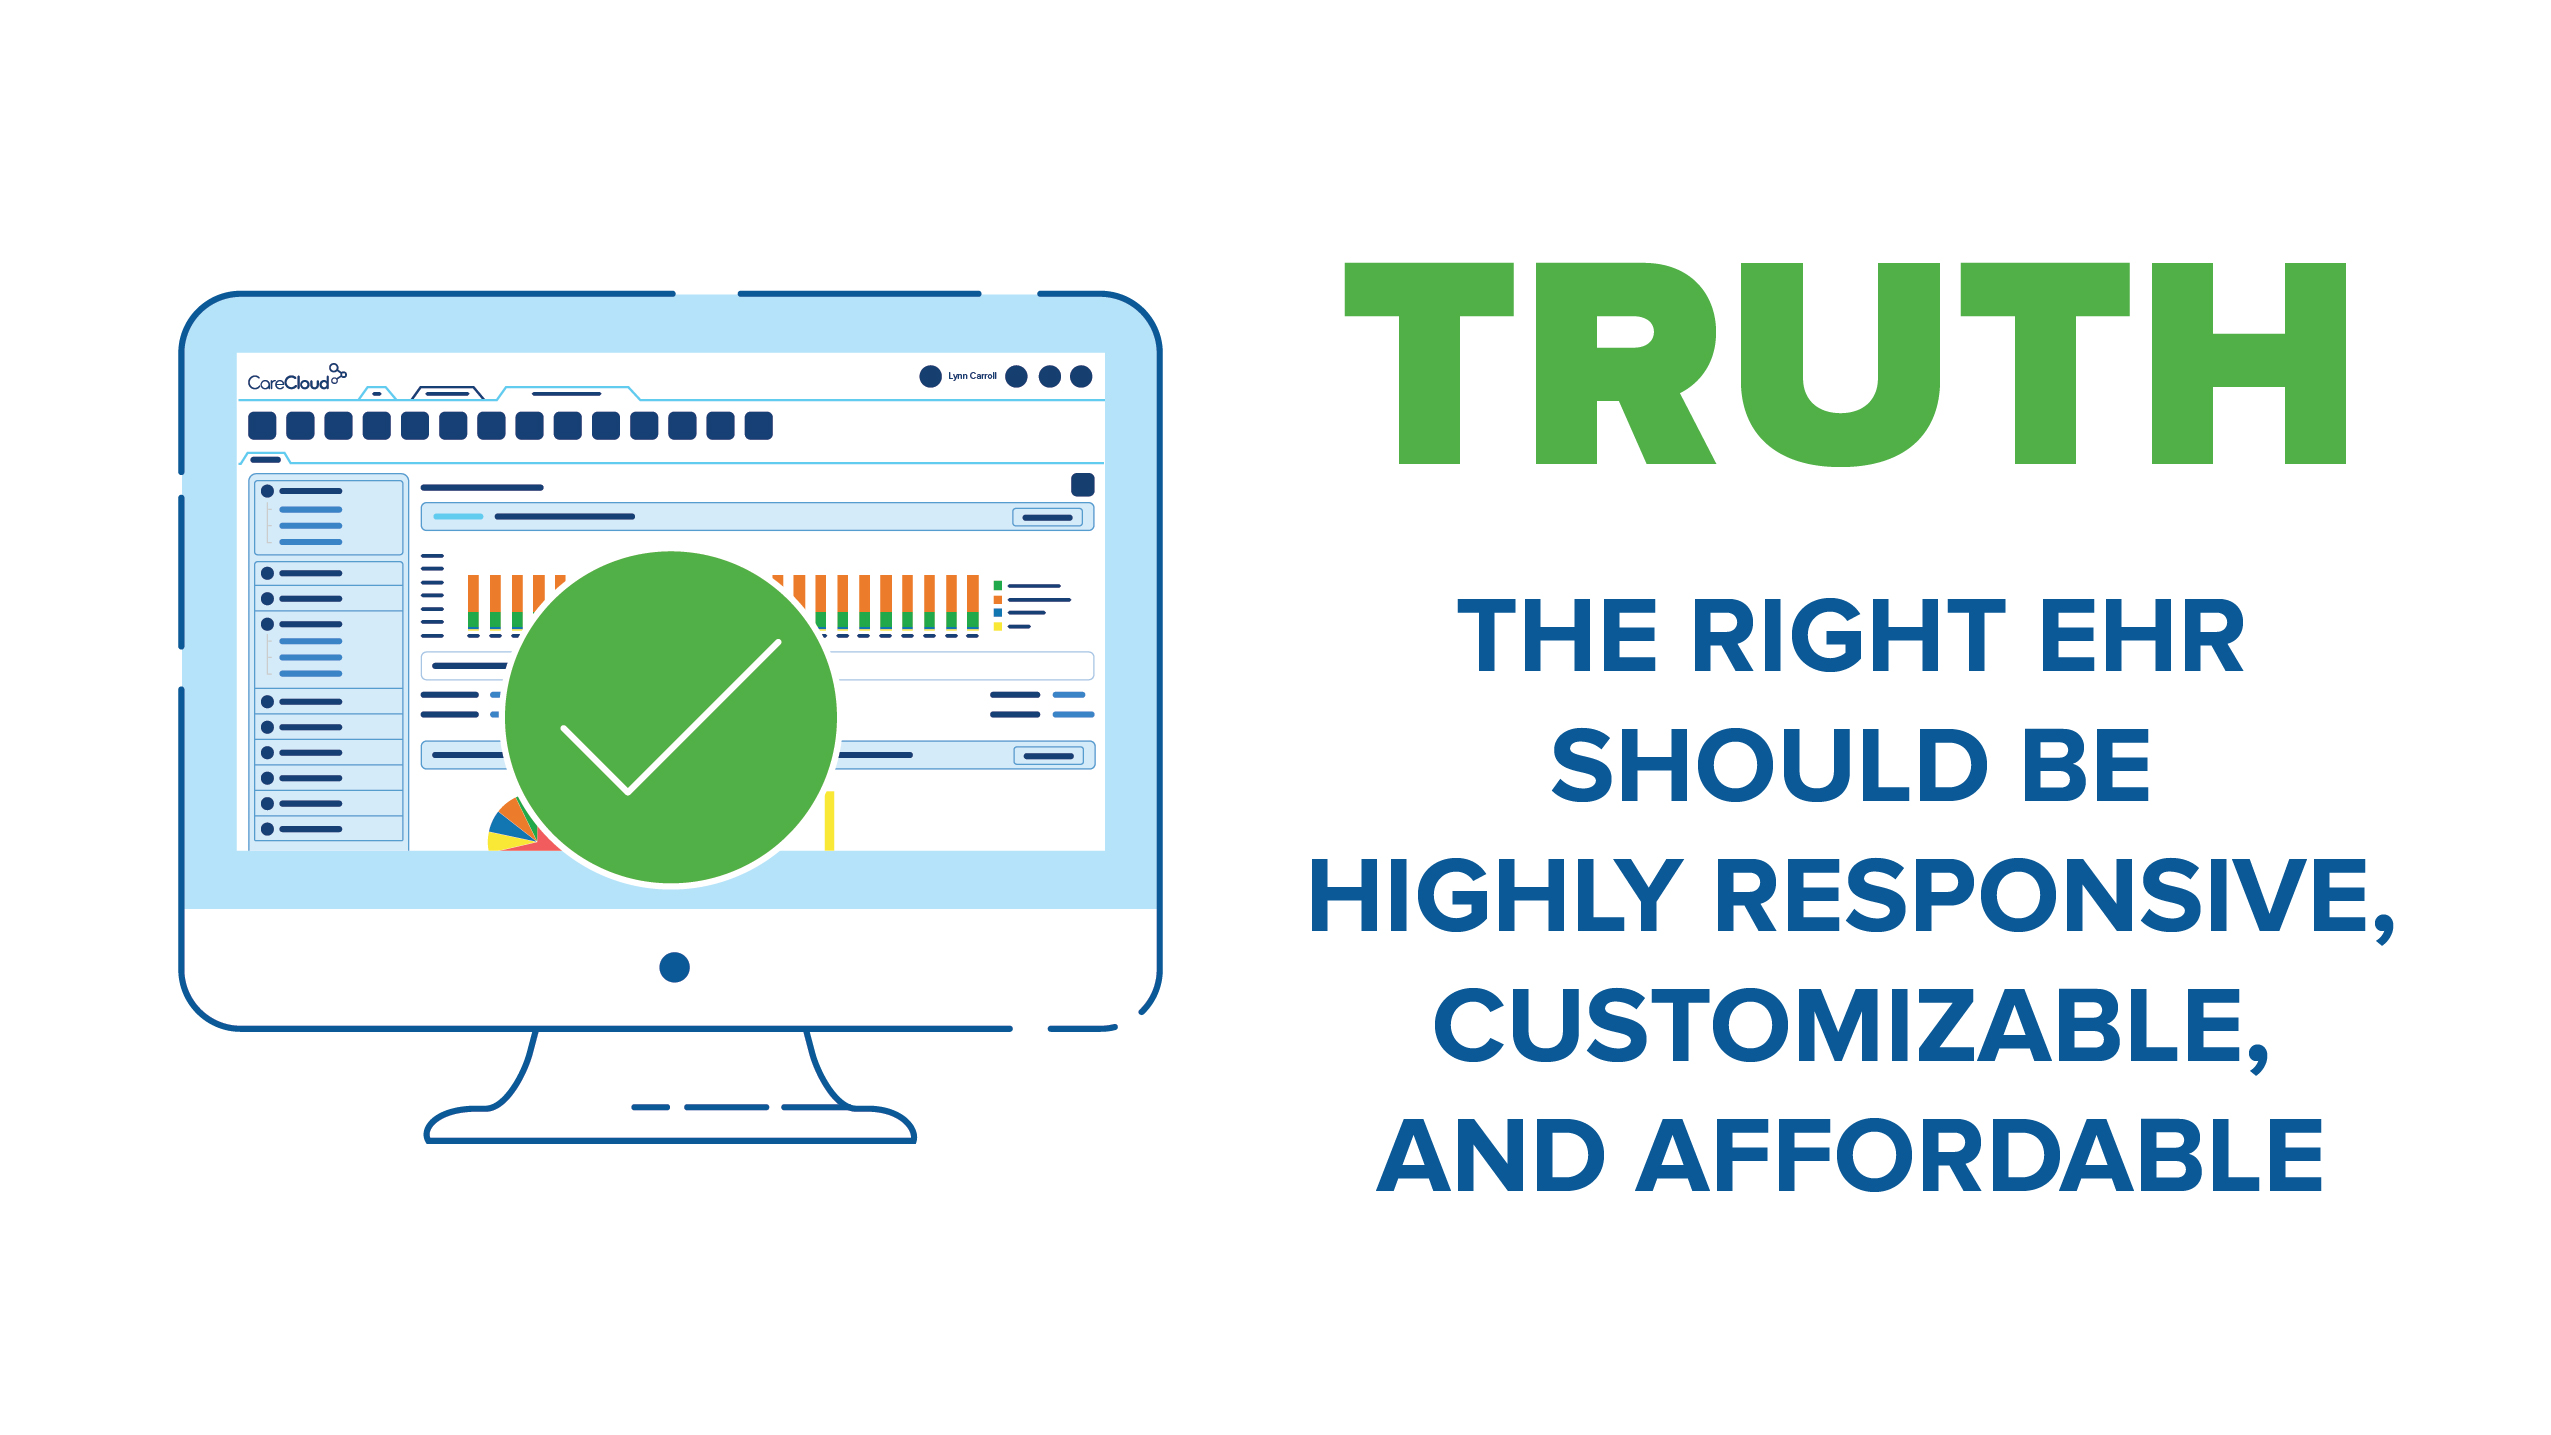 graphic showing that the right EHR is affordable and customizable